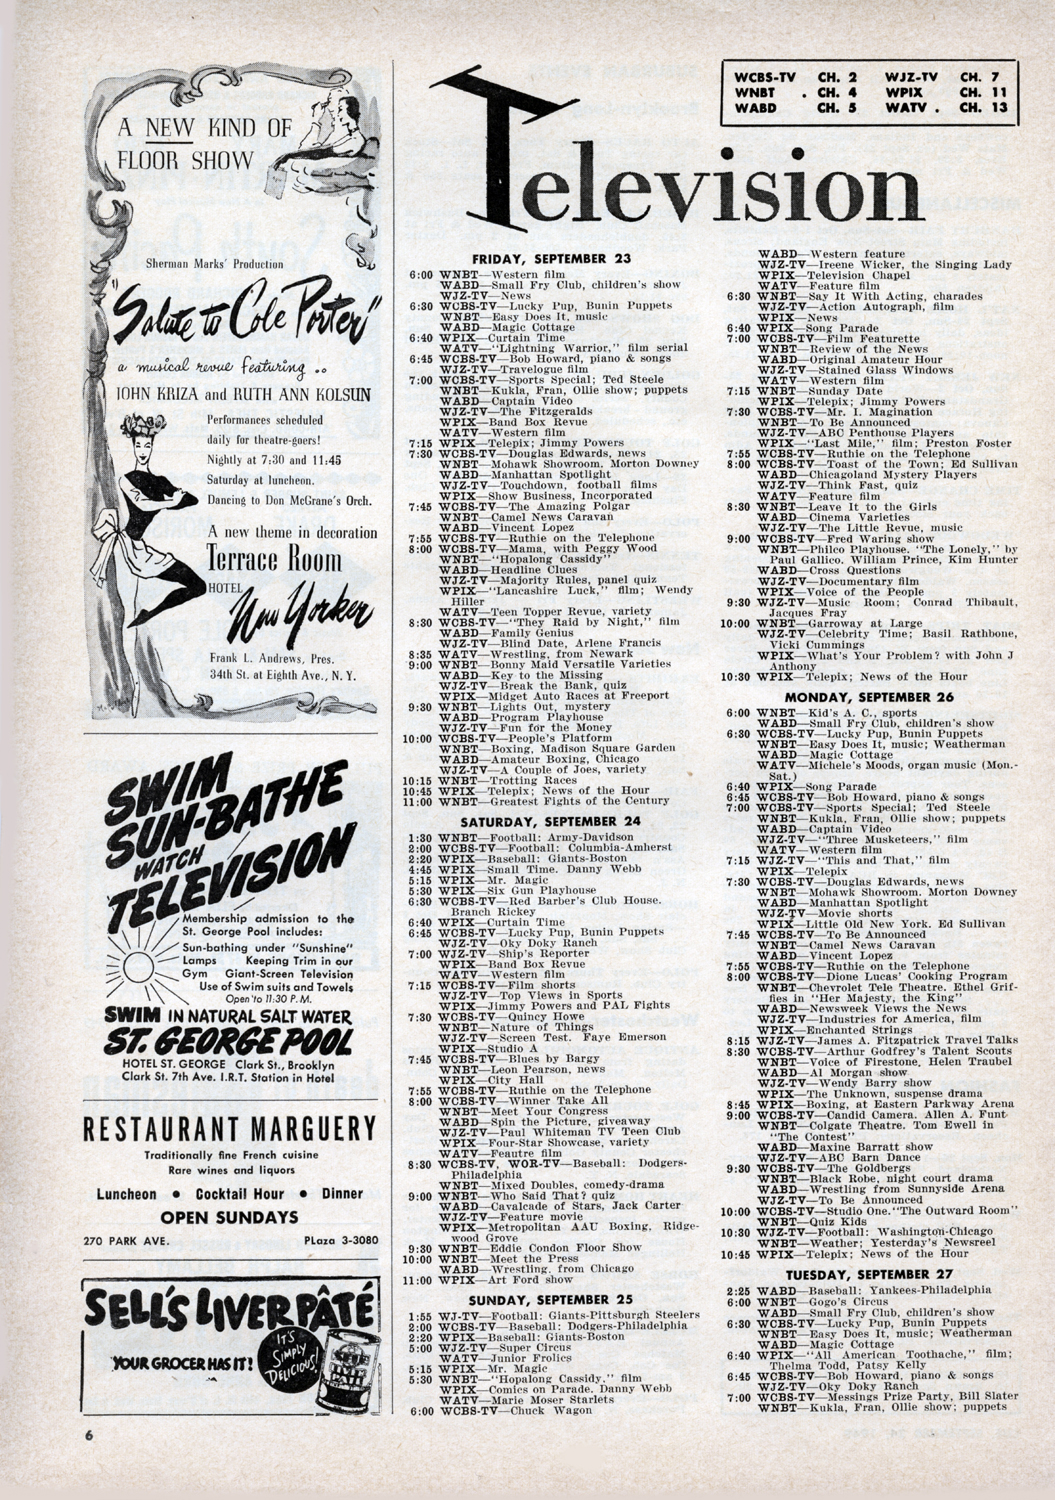 September 24, 1949 Pg. 6 INSIDE  CUE : Television Listings